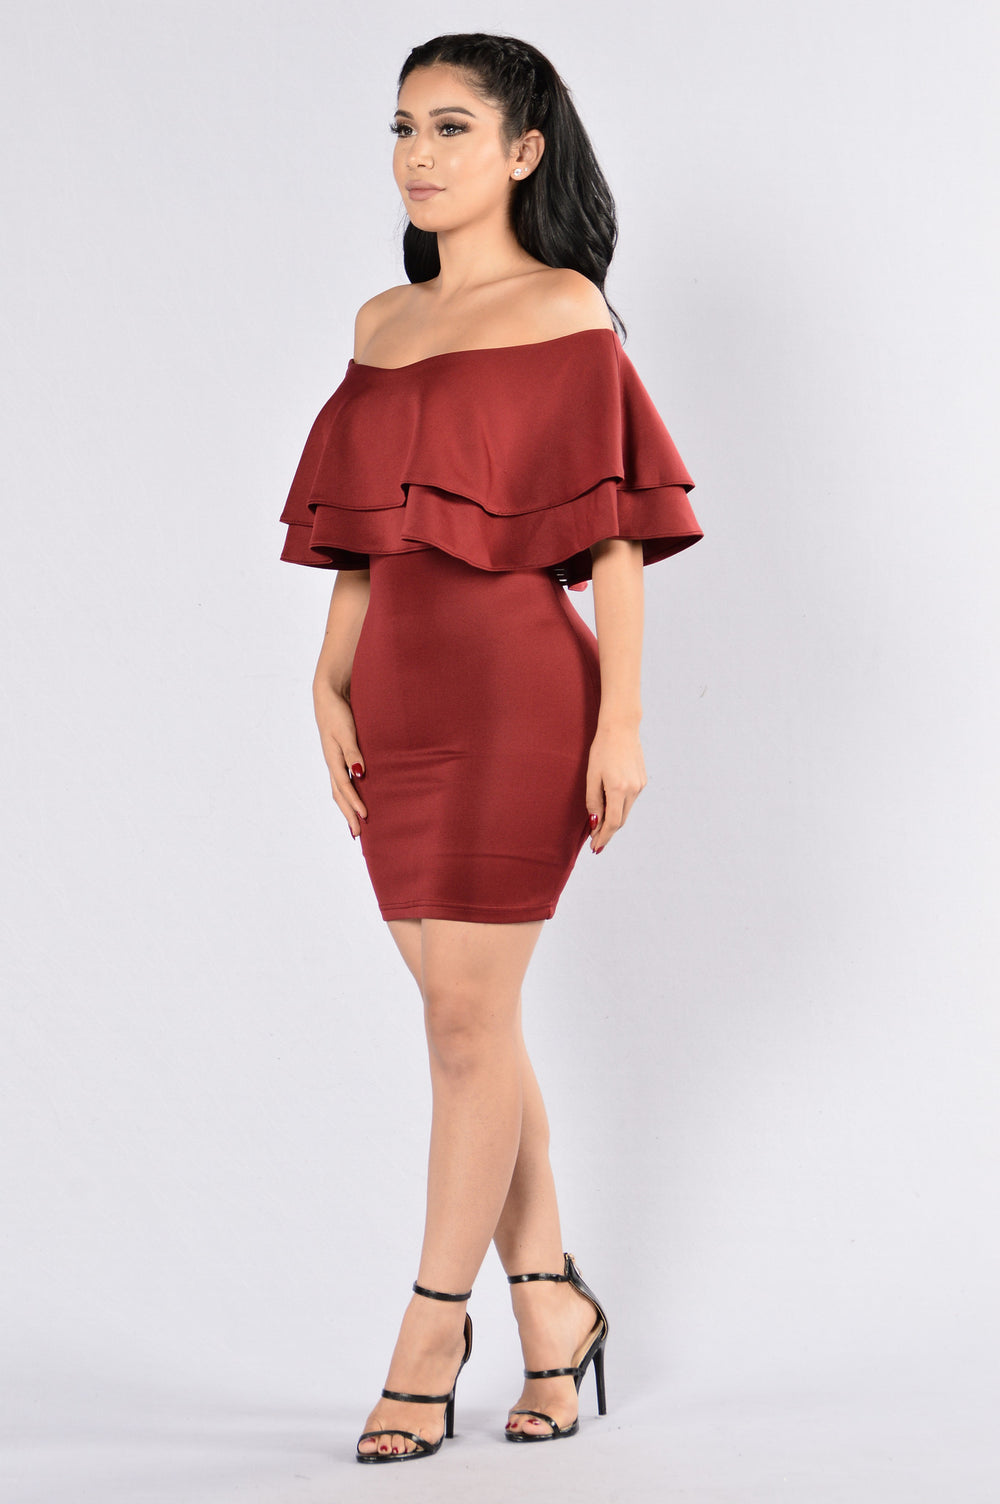 Ruffle Me Up Dress - Burgundy